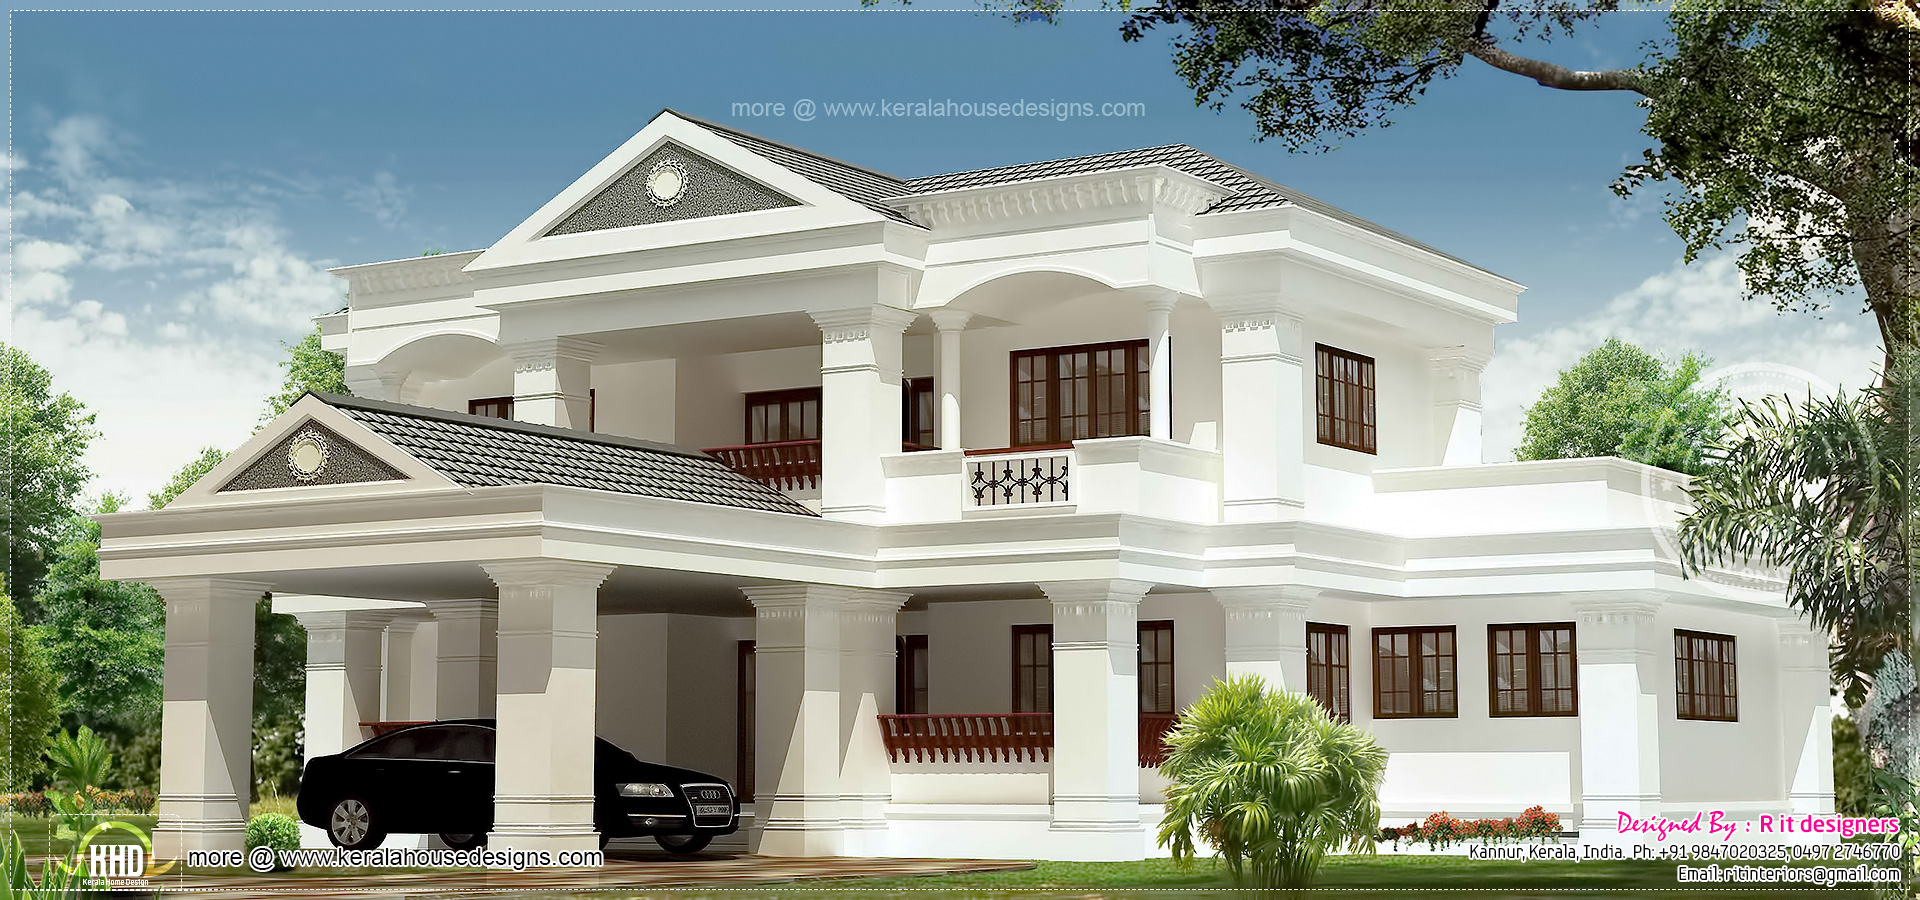 3100 luxury 5 bhk villa exterior kerala home for Home design exterior india